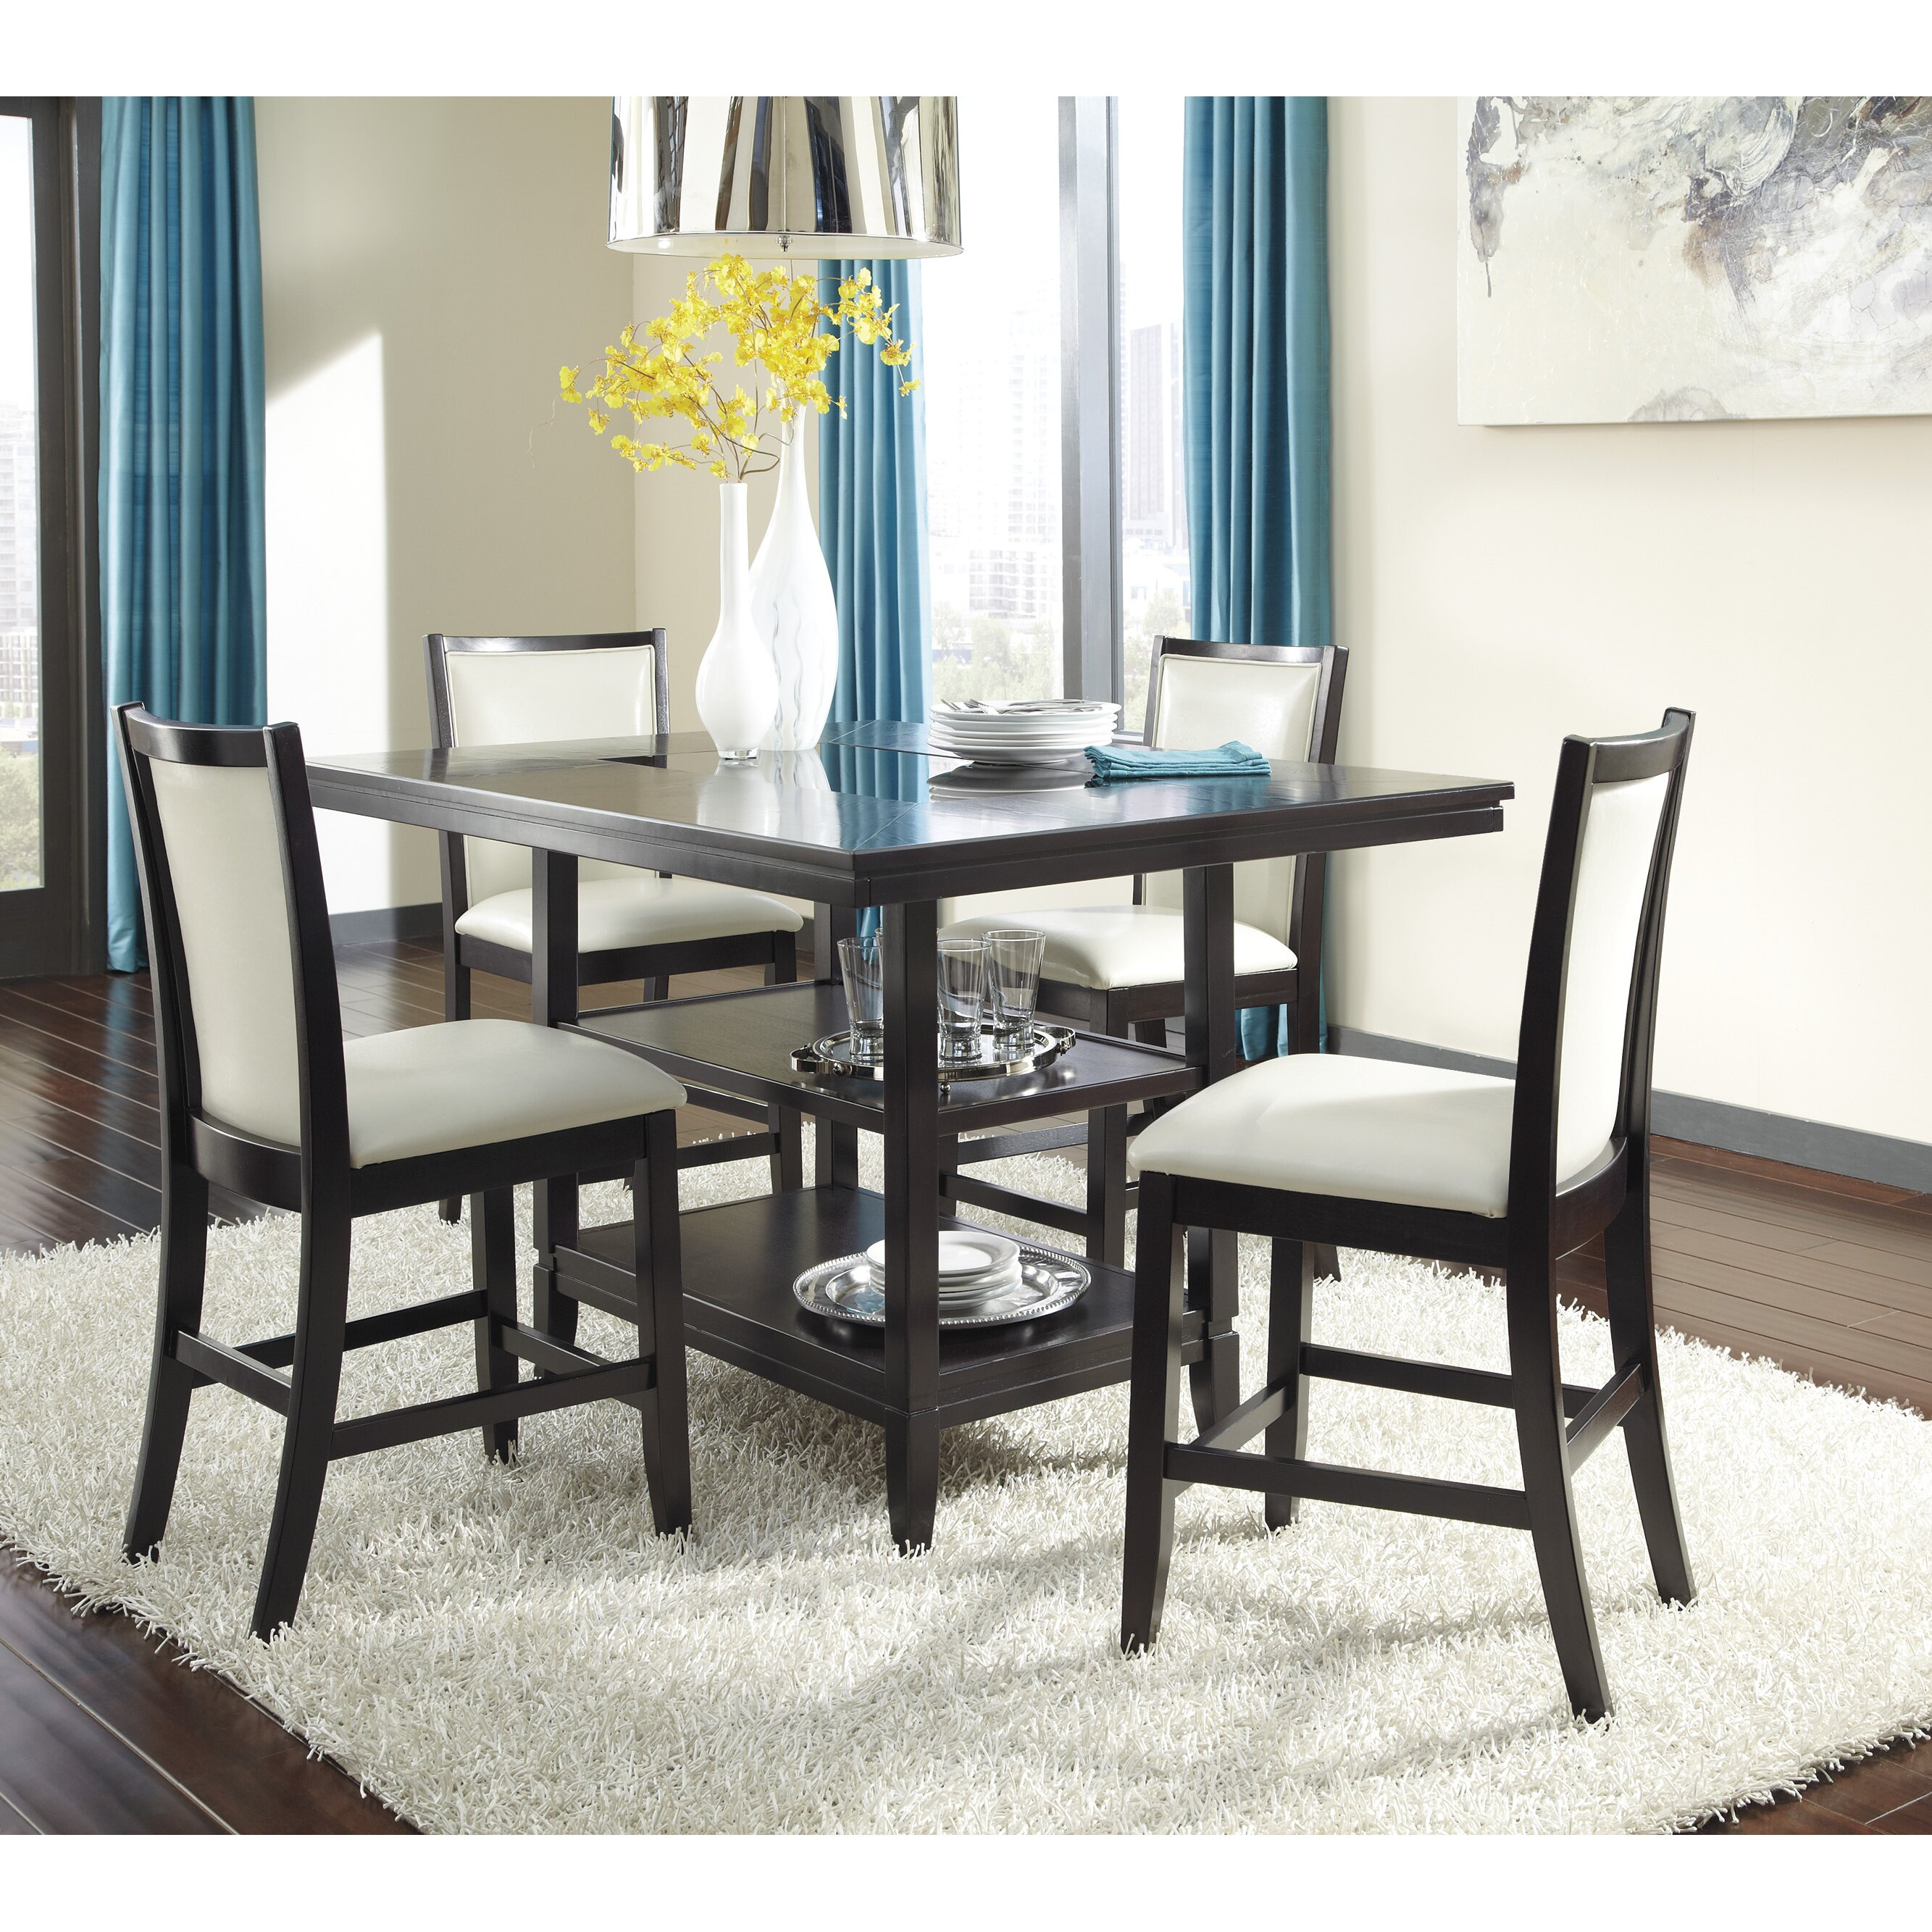 Signature Design by Ashley Trishelle Counter Height Dining  : Trishelle Counter Height Dining Table D550 32 from www.wayfair.com size 2667 x 2667 jpeg 1544kB